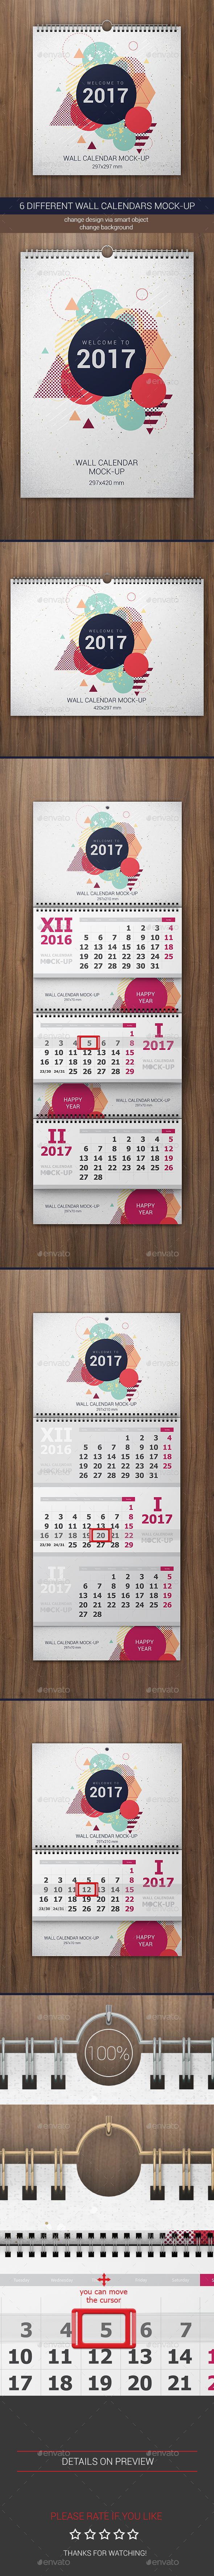 Wall Calendars Mock-Up - Miscellaneous Print